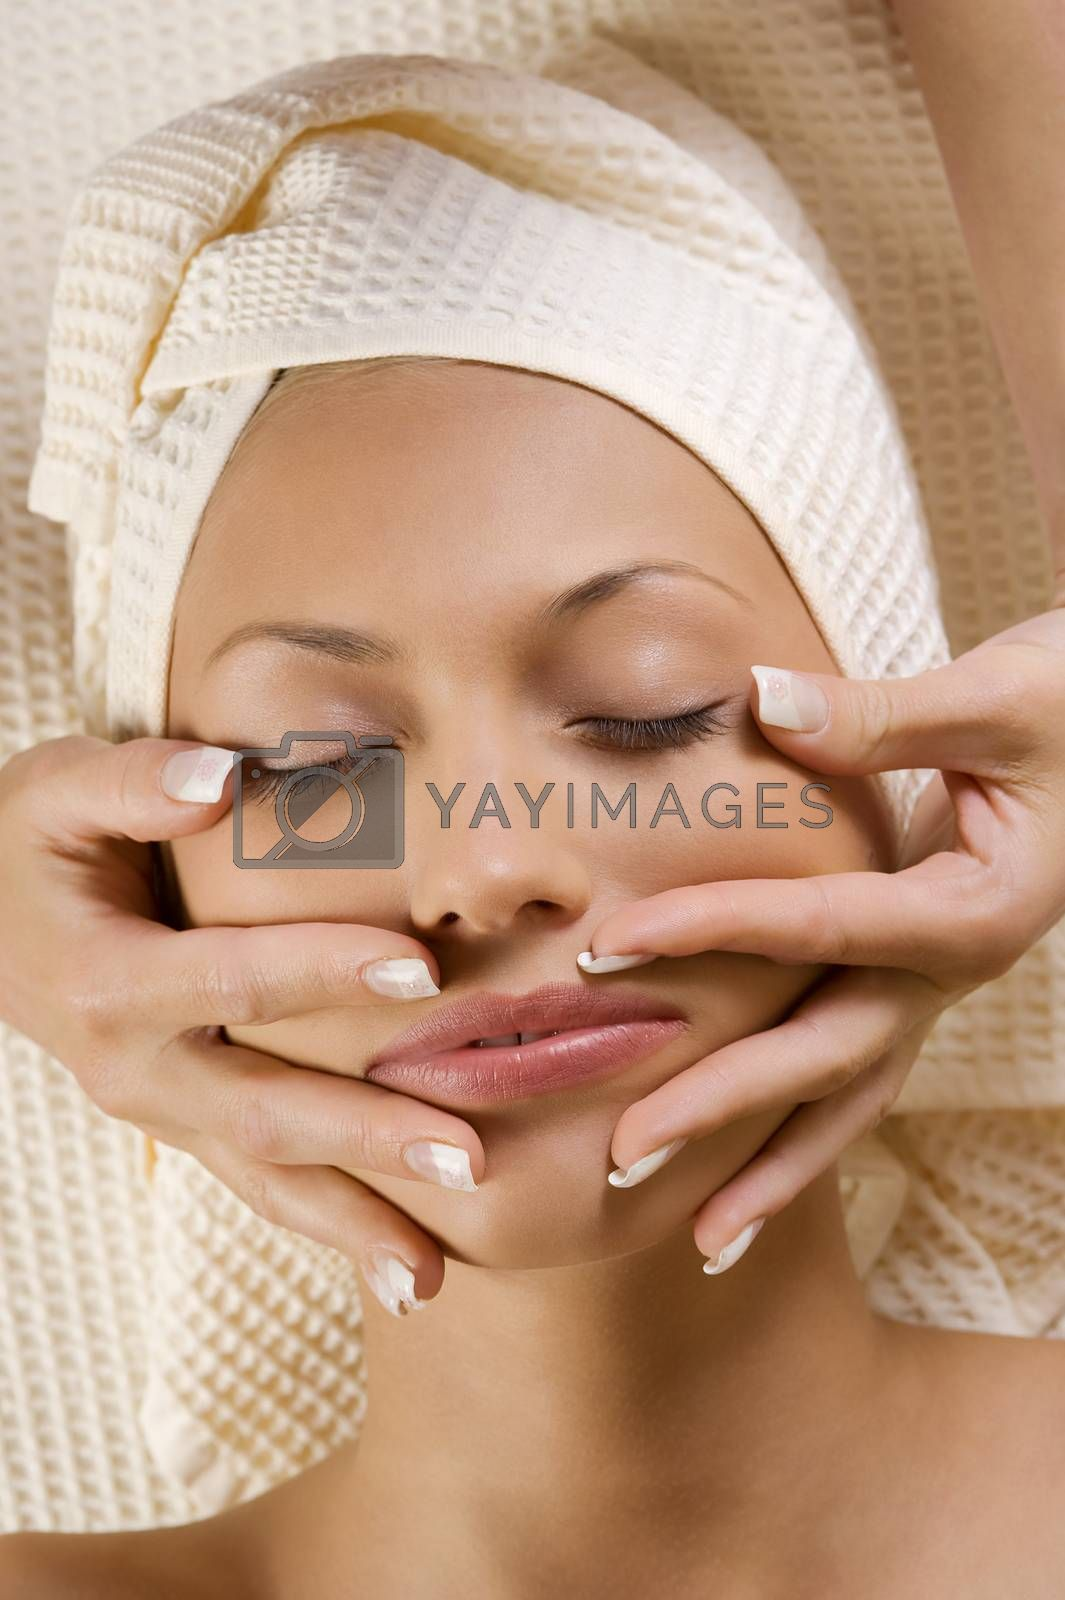 Royalty free image of stretching face by fotoCD